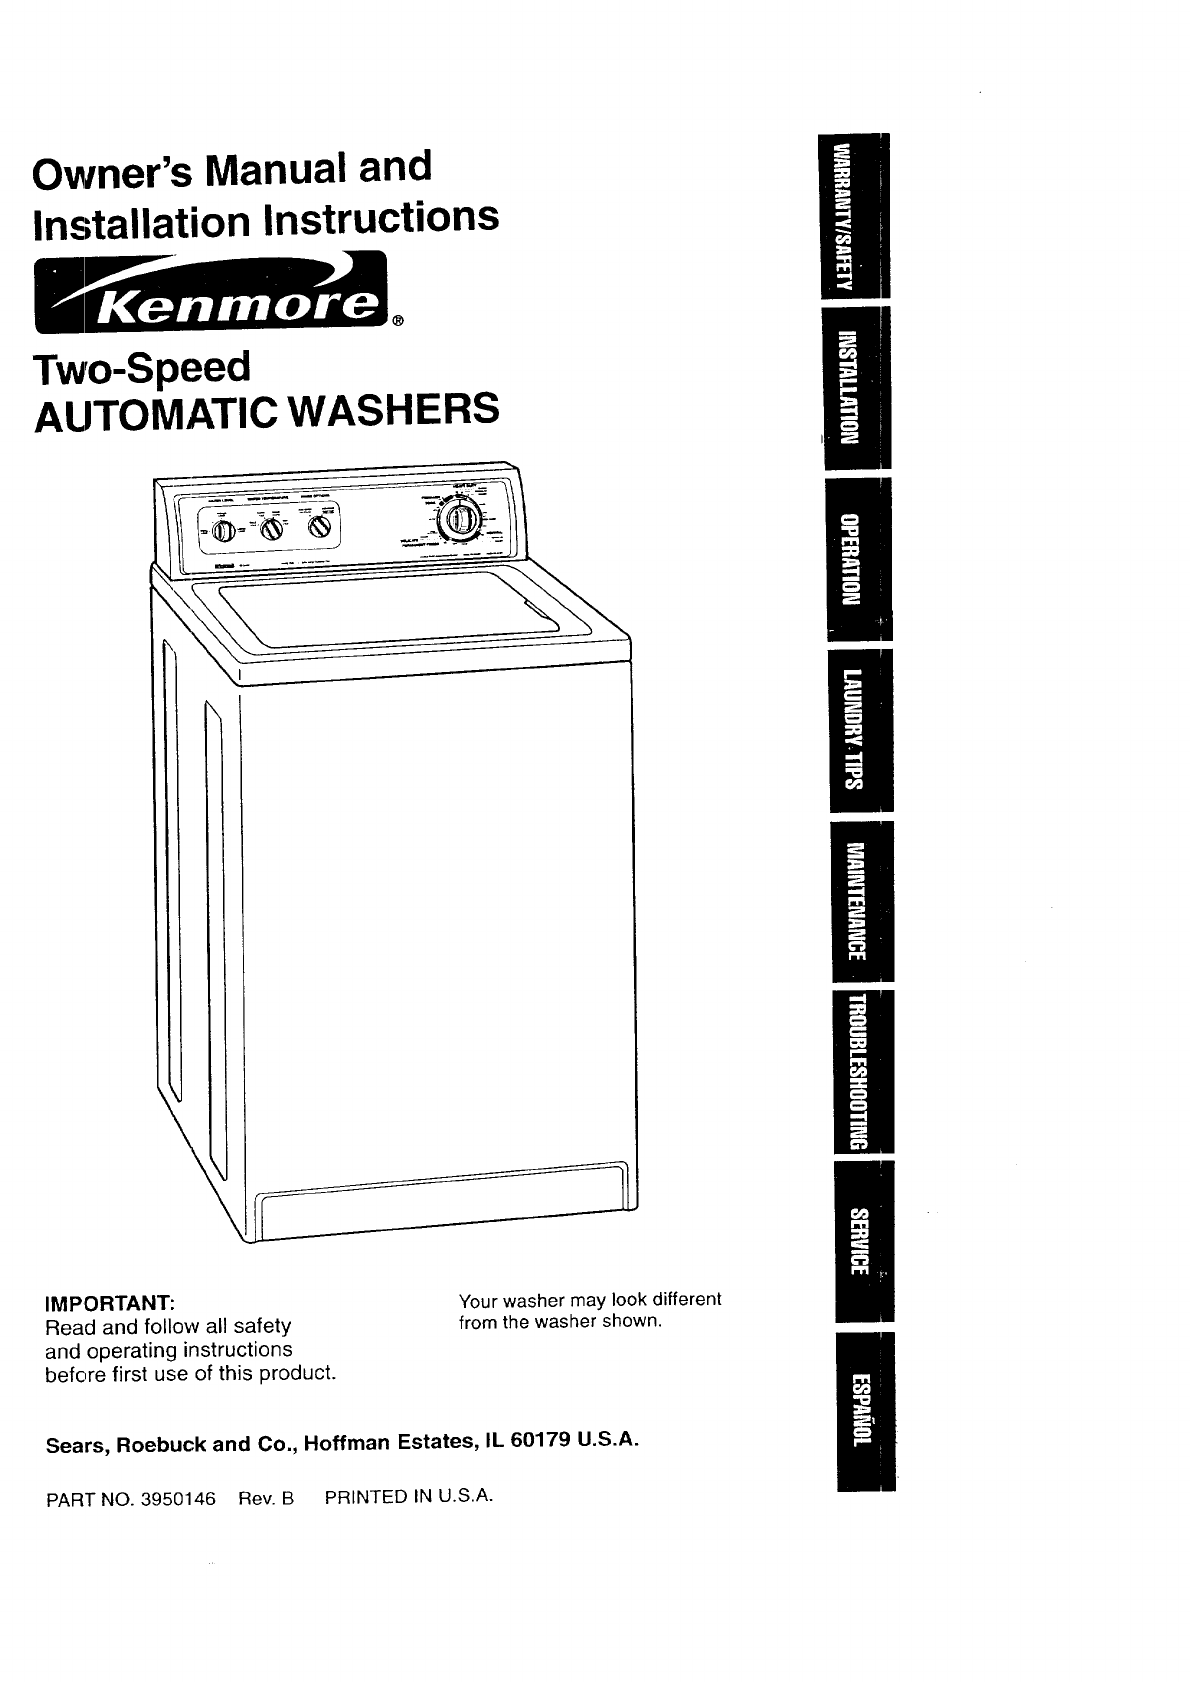 kenmore 11018202790 user manual automatic washer manuals and guides rh usermanual wiki kenmore washer owner manual kenmore washer owner manual